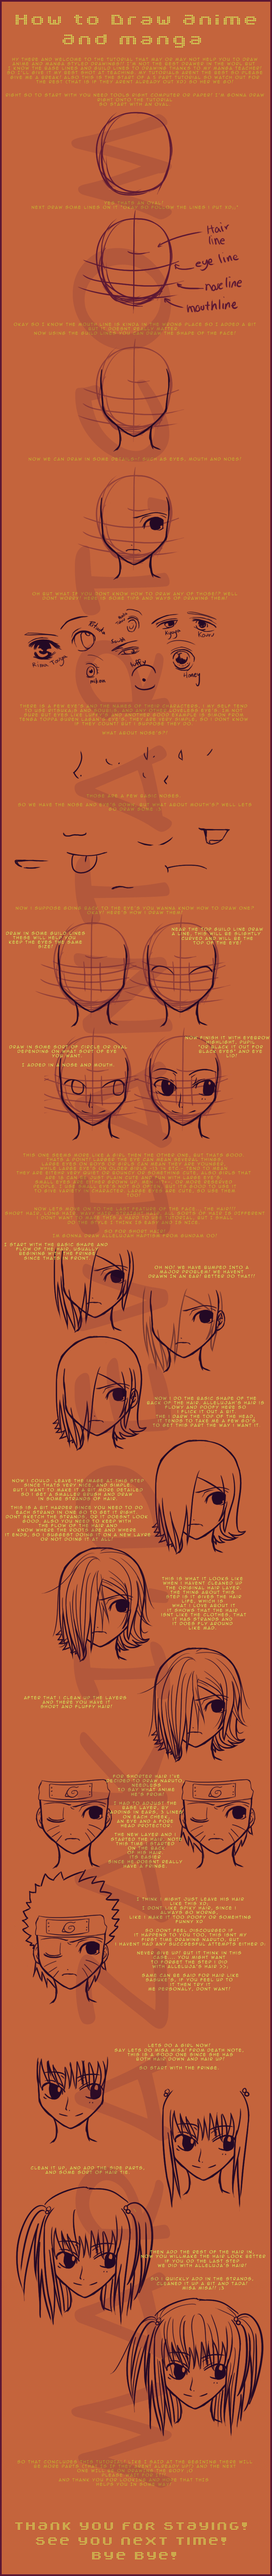 Tutorial 1 How To Draw Anime By Marazaki On Deviantart Anime Drawings Drawings Art Basics